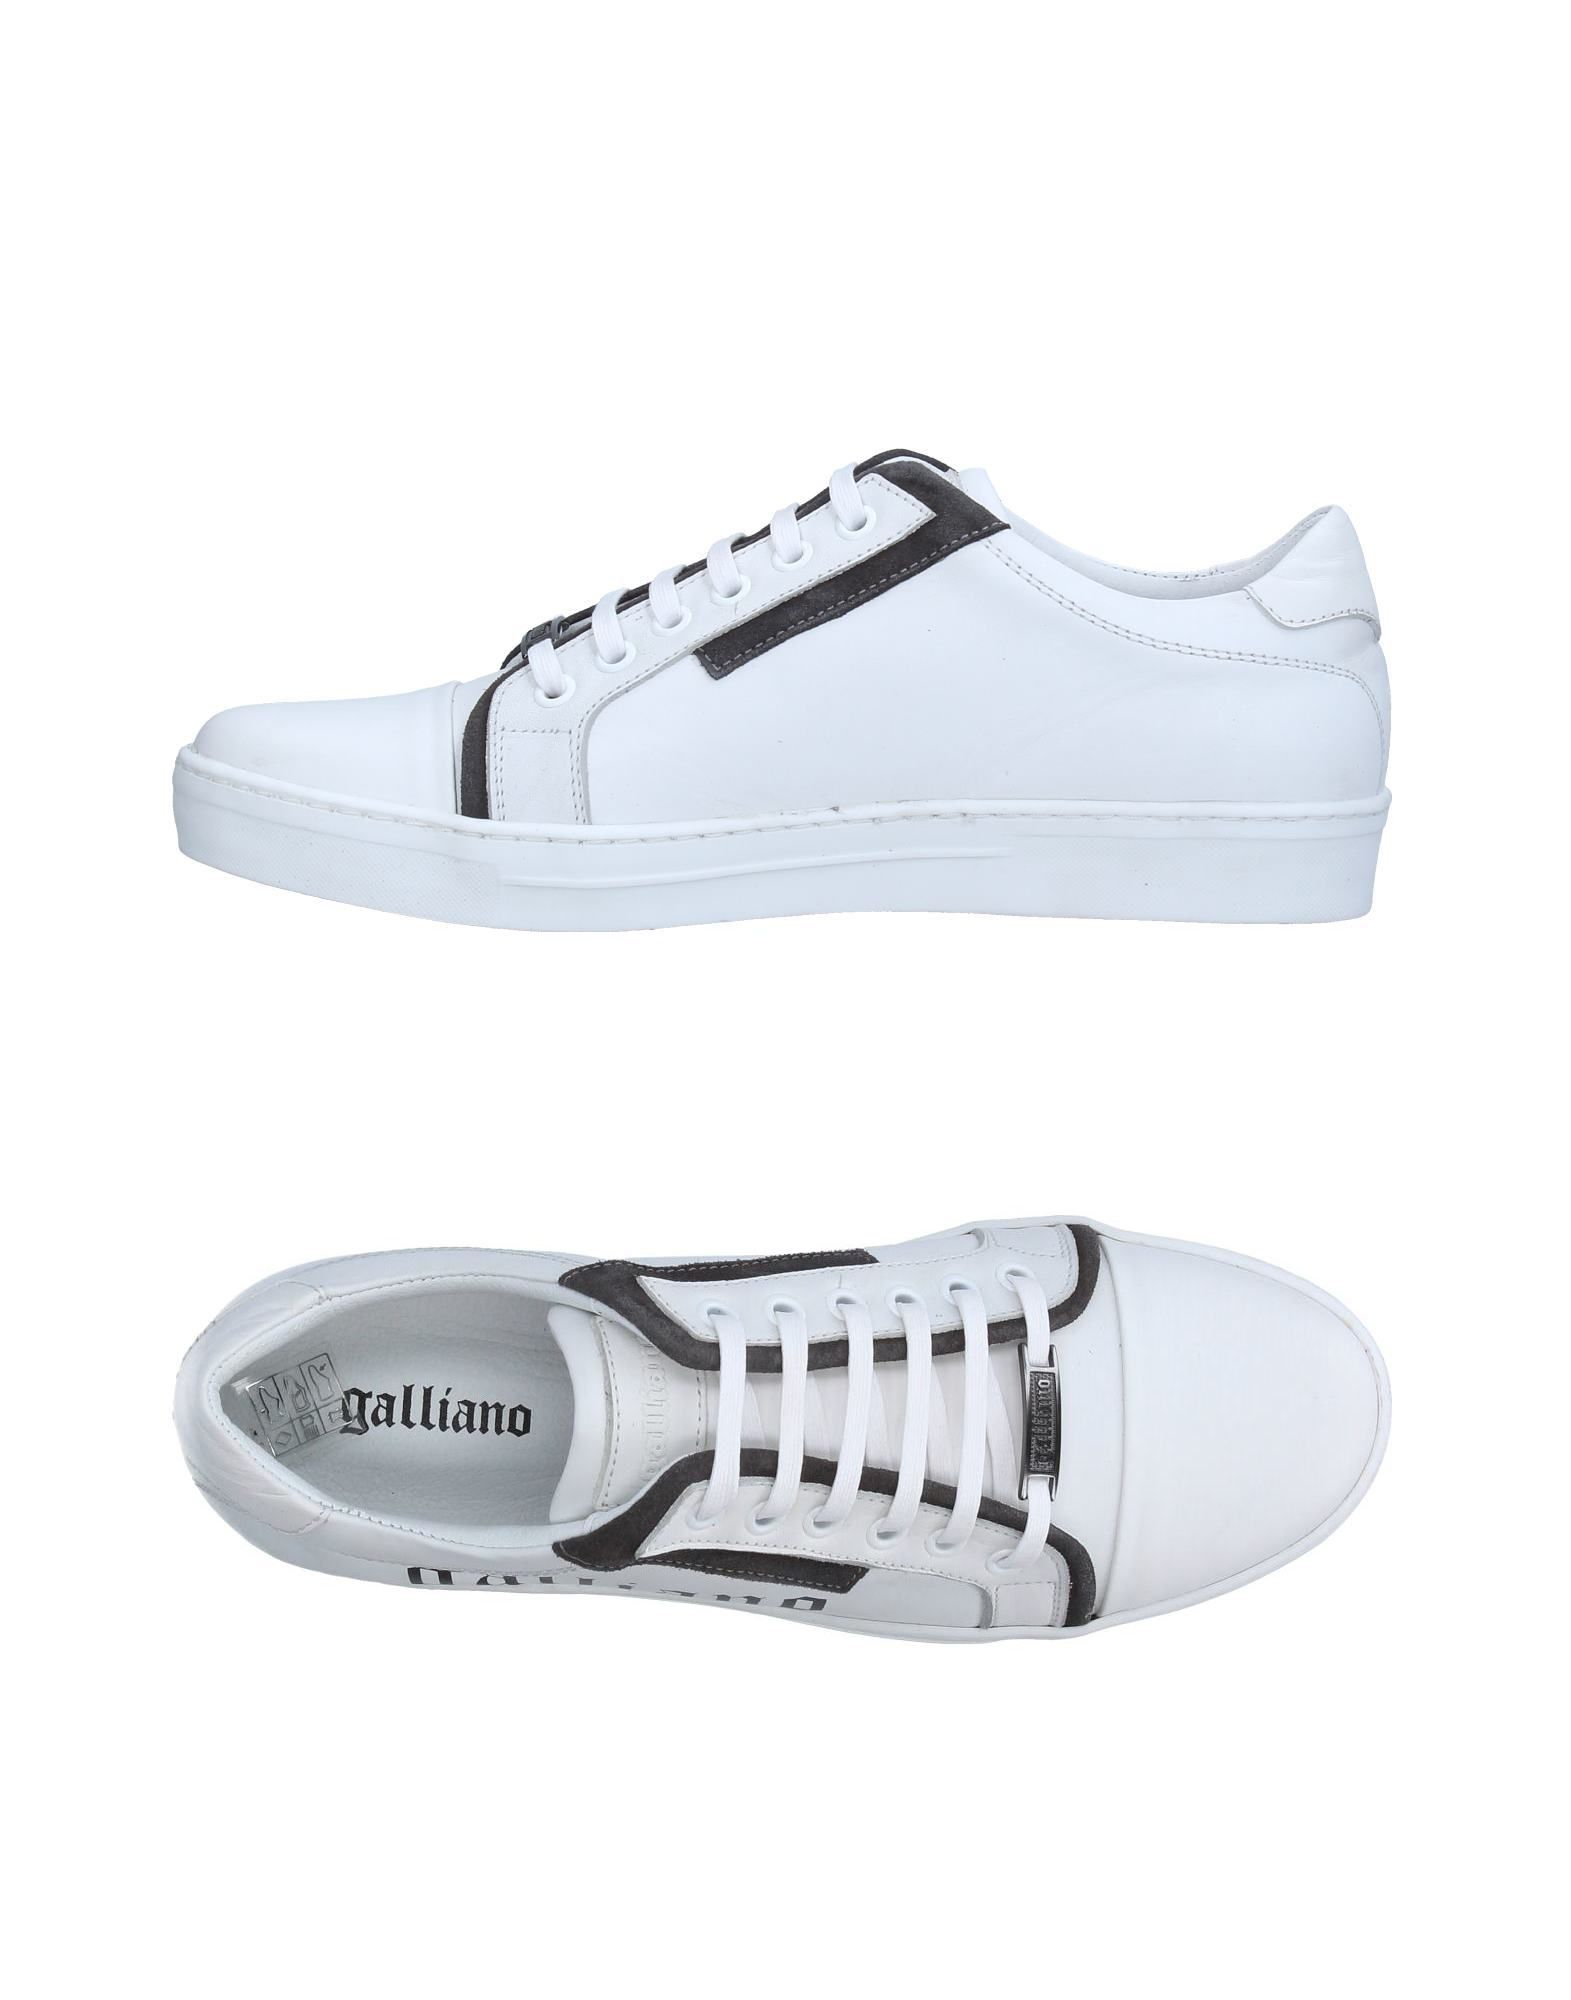 Sneakers Galliano Homme - Sneakers Galliano  Blanc Chaussures femme pas cher homme et femme